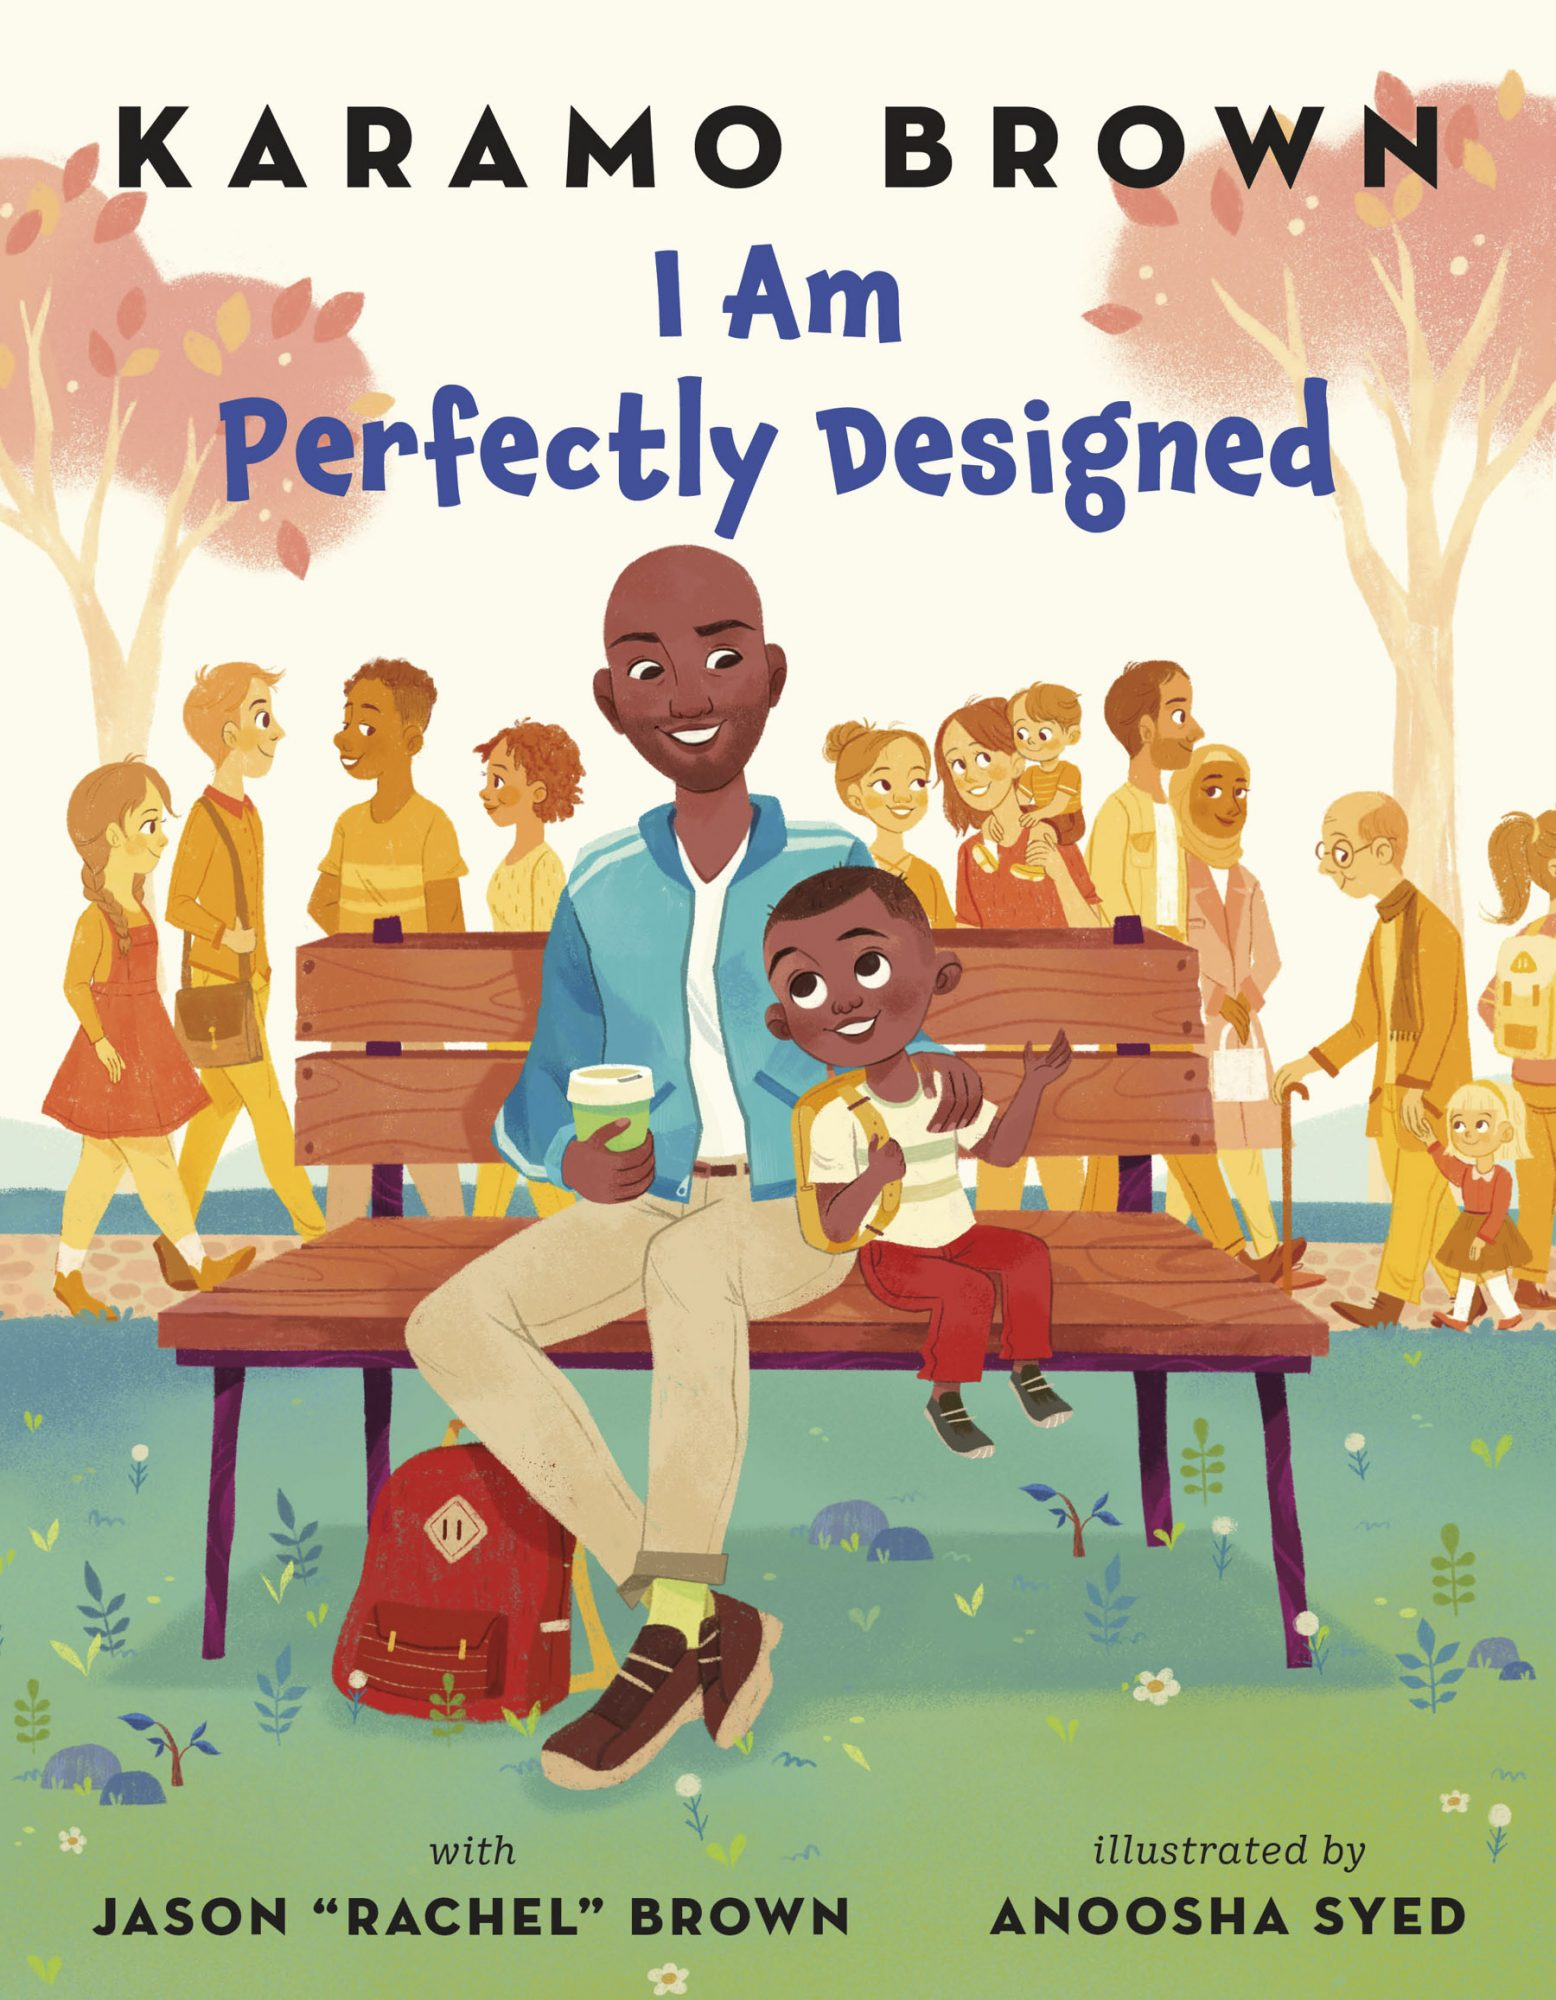 I Am Perfectly Designed KARAMO BROWN & JASON BROWN; ILLUSTRATED BY ANOOSHA SYED CR: Macmillan